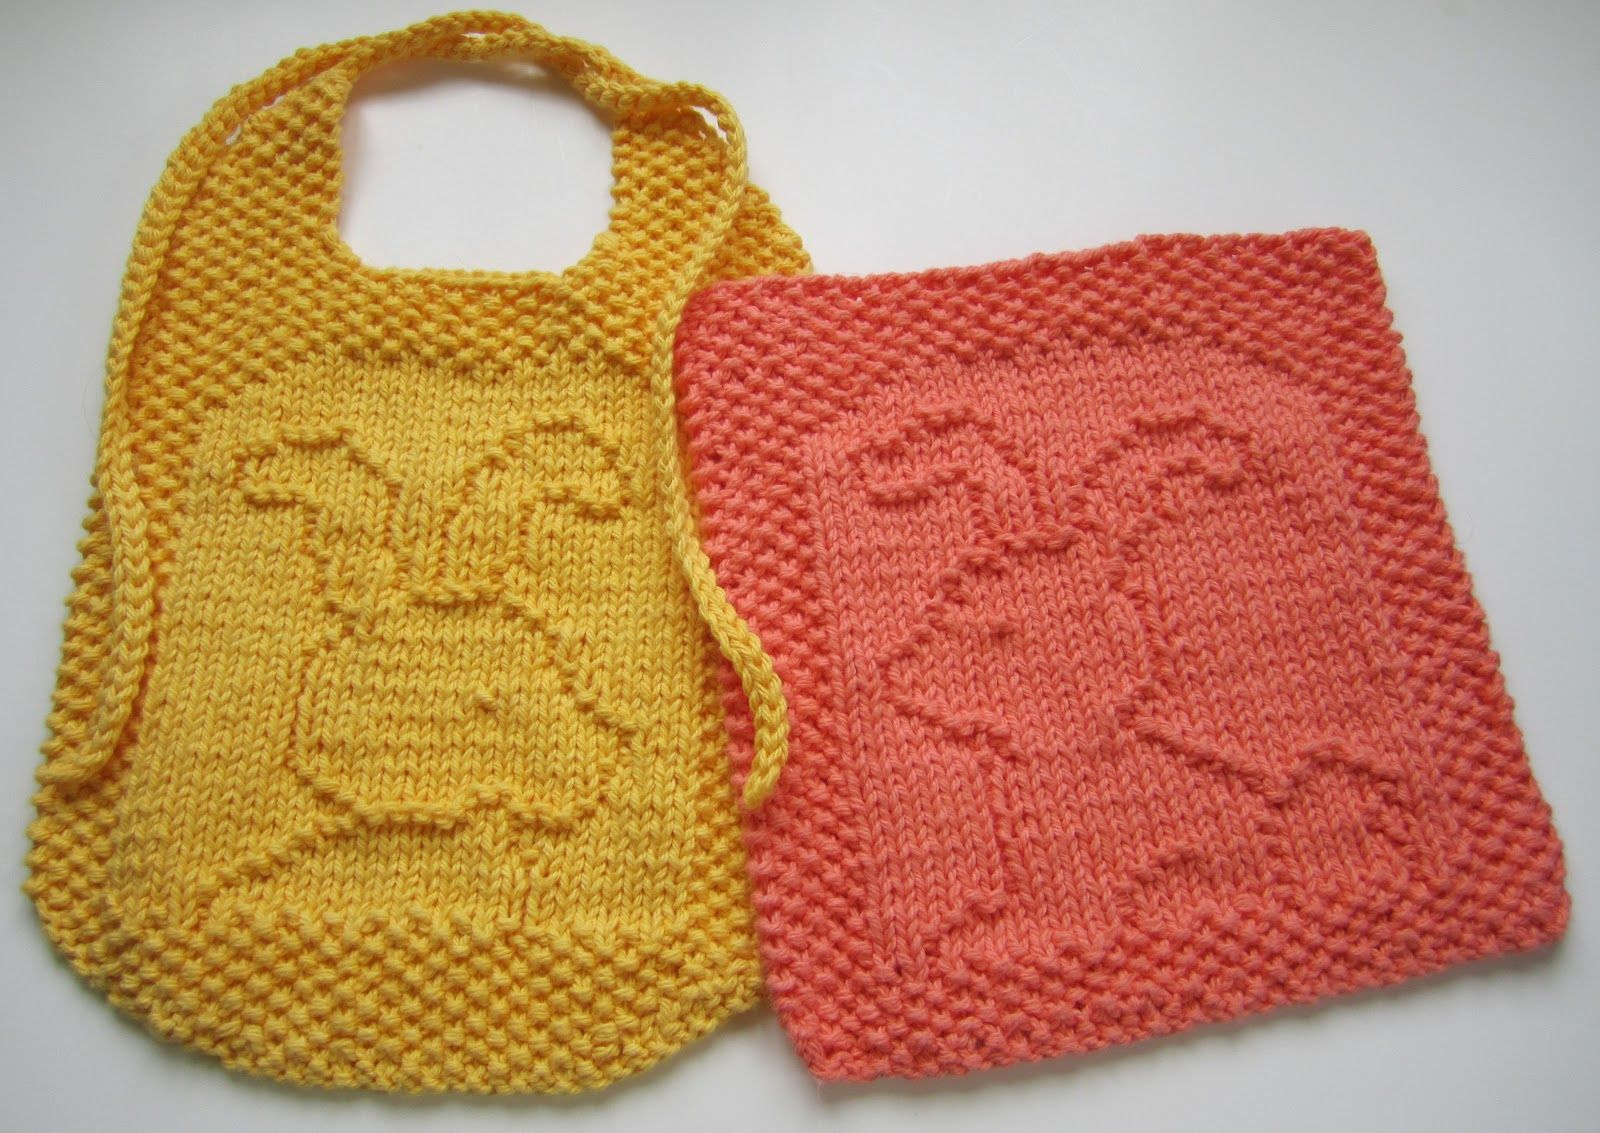 Free Patterns for dishcloths and bibs. Down Cloverlaine: A Tail of ...